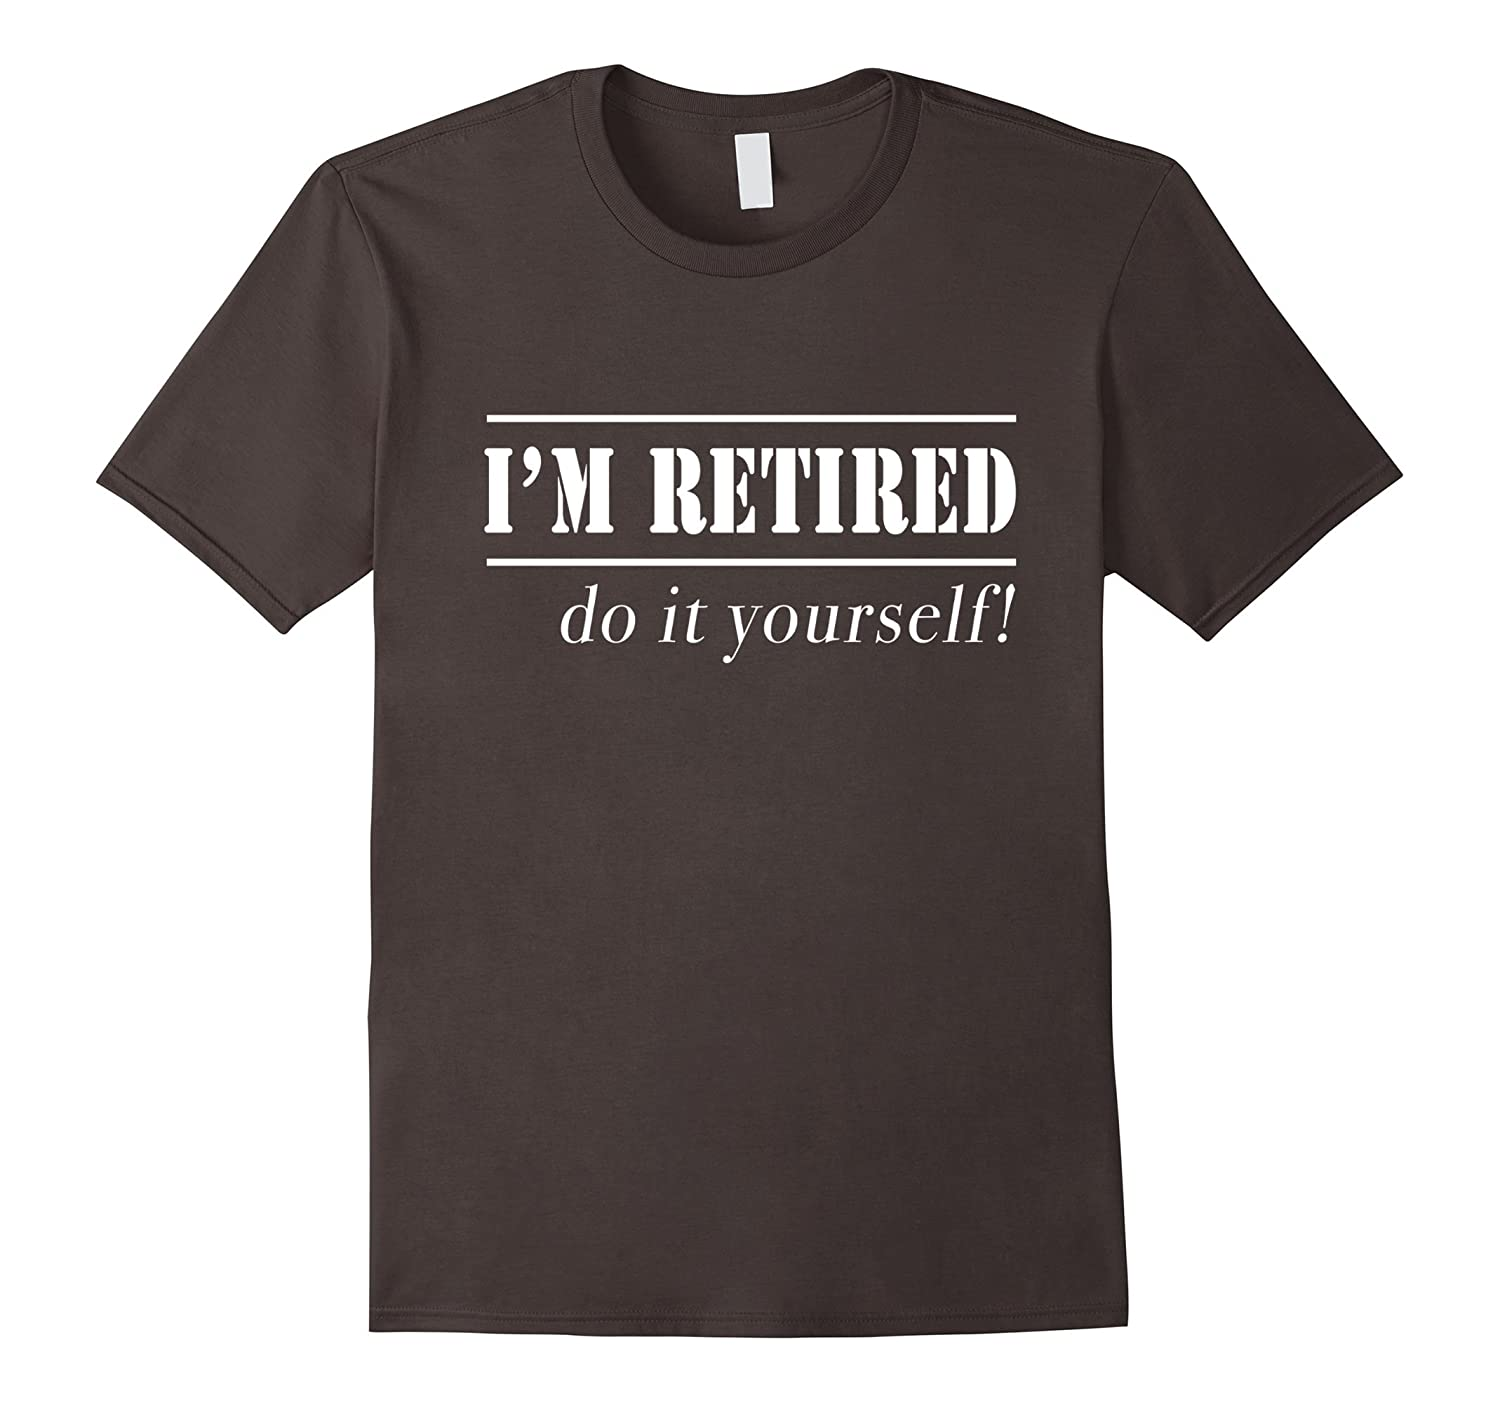 Im retired do it yourself t shirt rt rateeshirt im retired do it yourself t shirt rt solutioingenieria